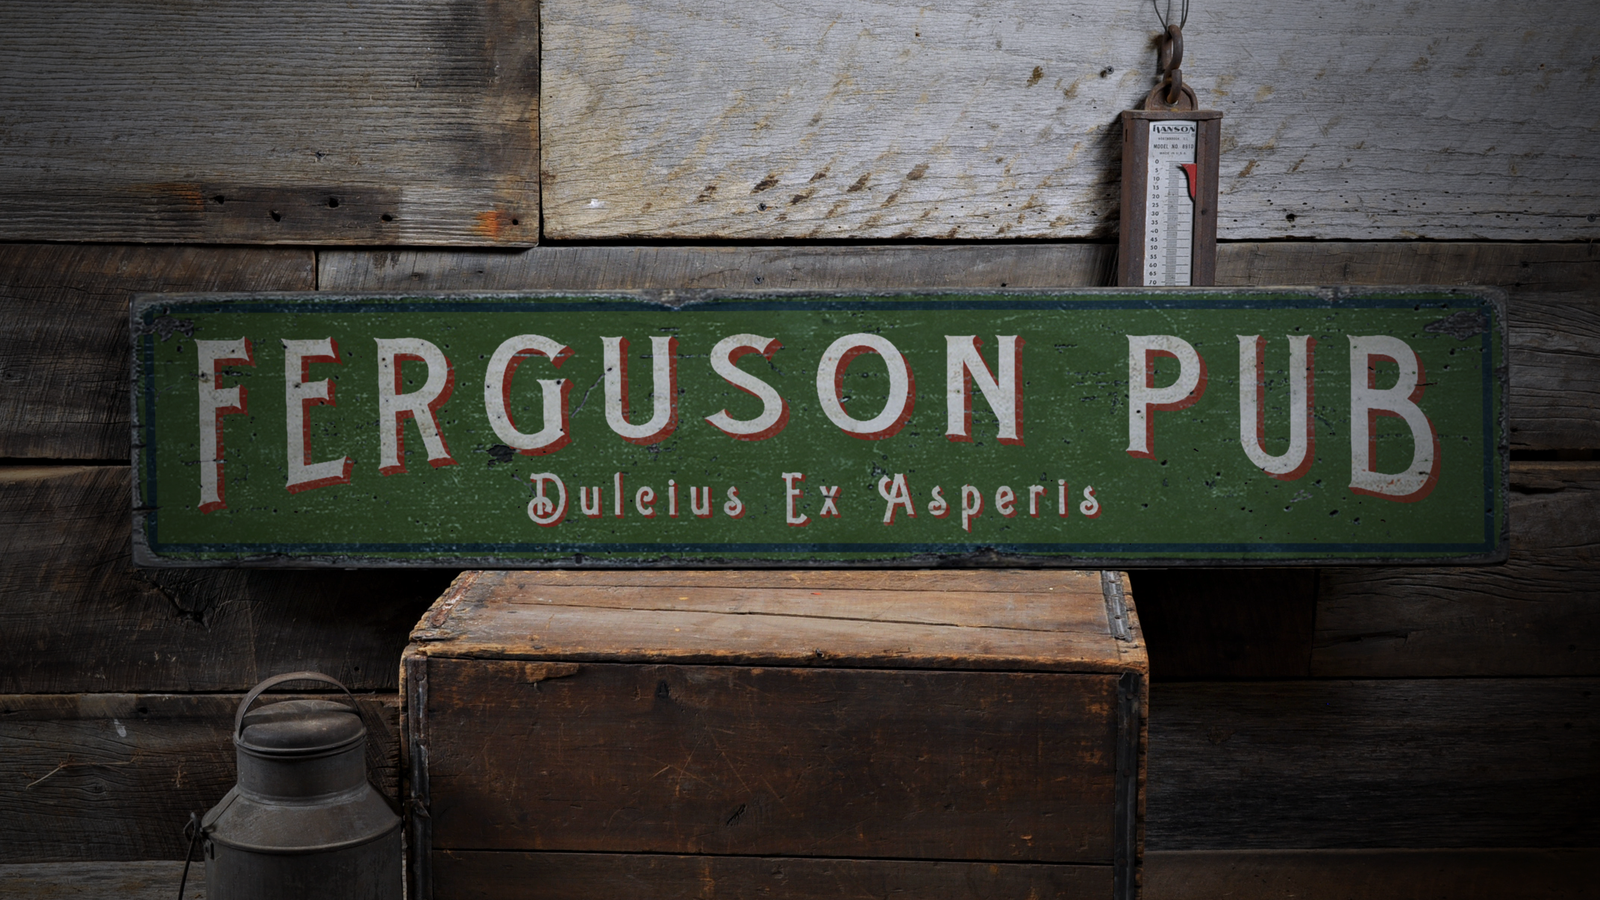 Family Pub, Family Name, Home Rustic Bar, Home - Rustic Home Distressed Wood Sign ENS1000883 ffe0d8